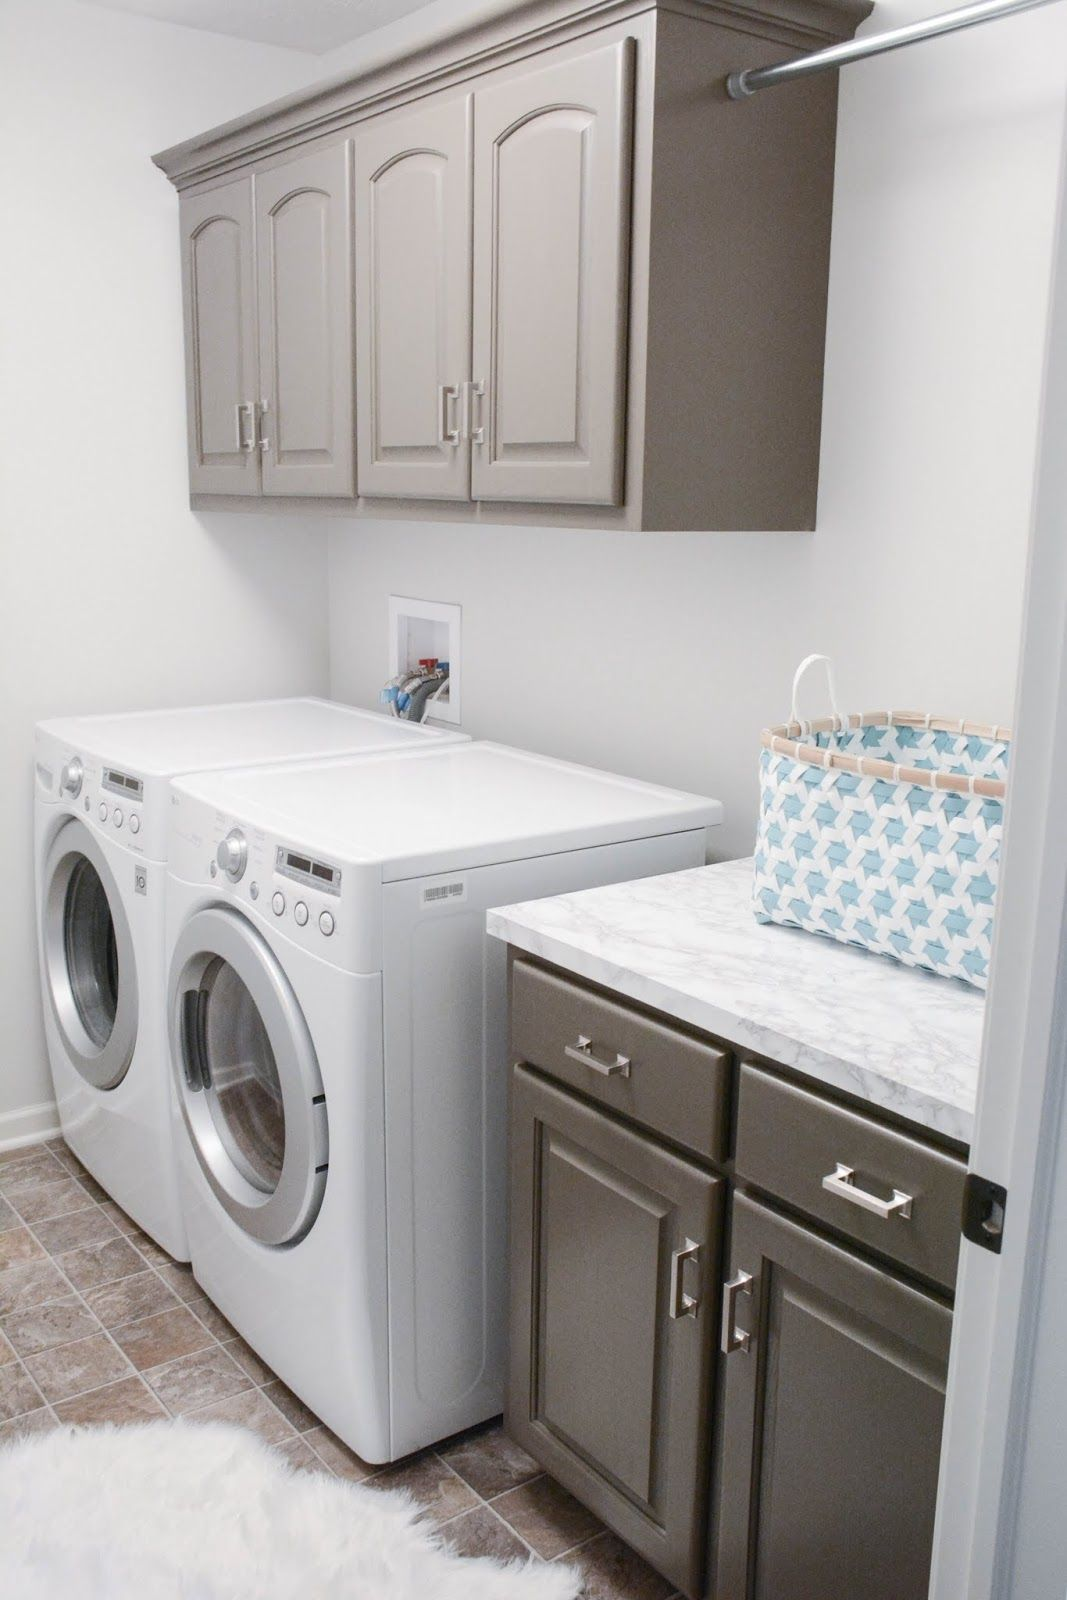 Revealed :: Laundry Room | Featuring Hickory Hardware Studio Pulls  (P3010 SN)